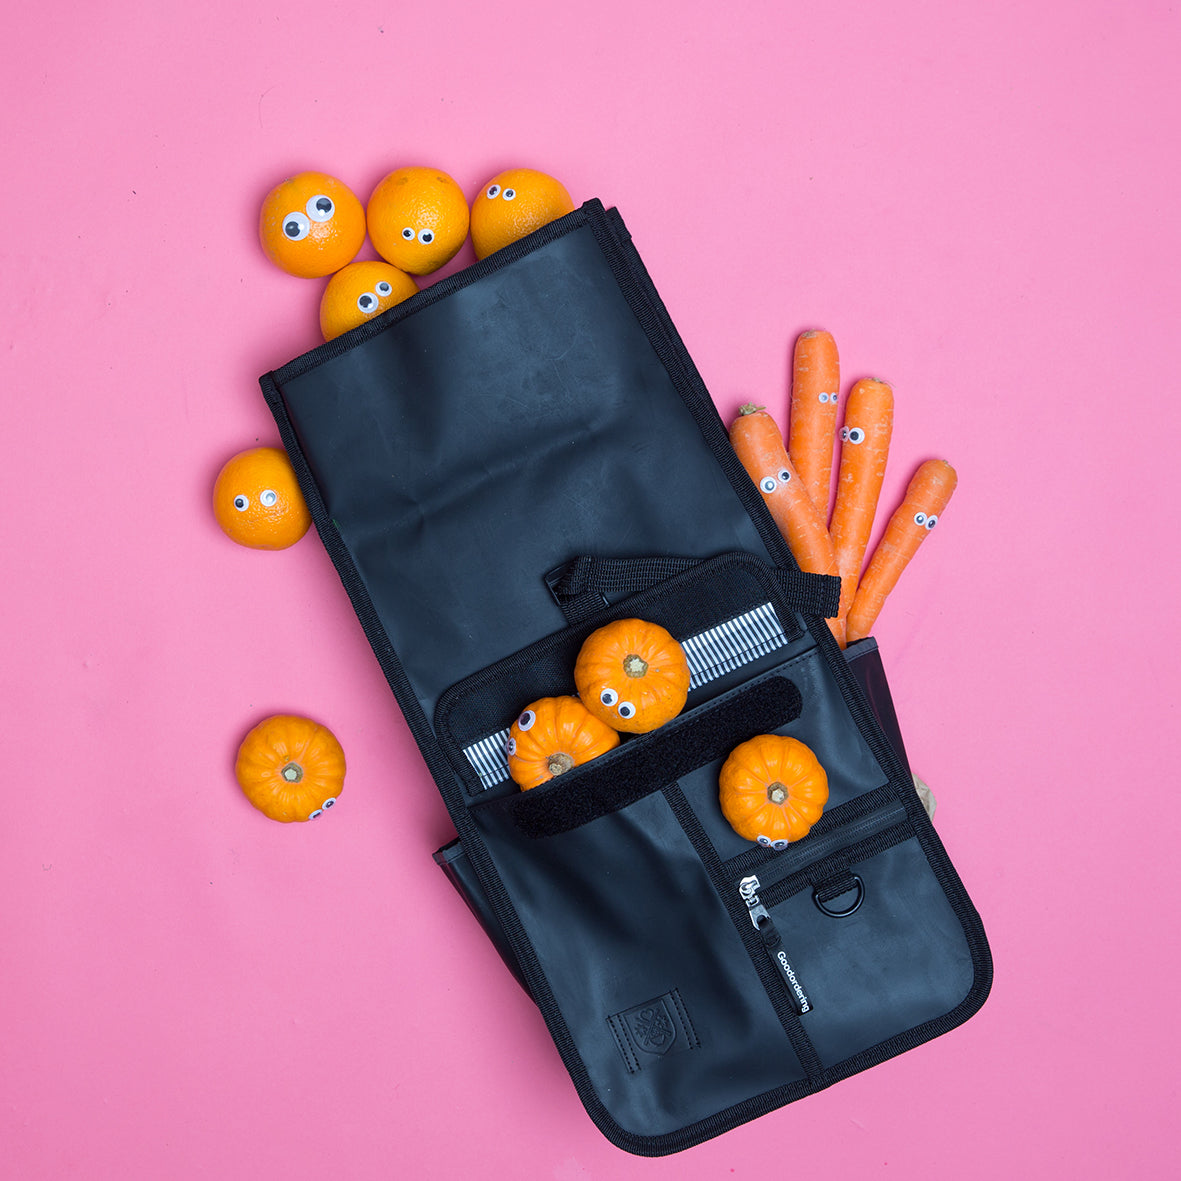 Goodordering fruit and vegetable photoshoot featuring roll top backpack